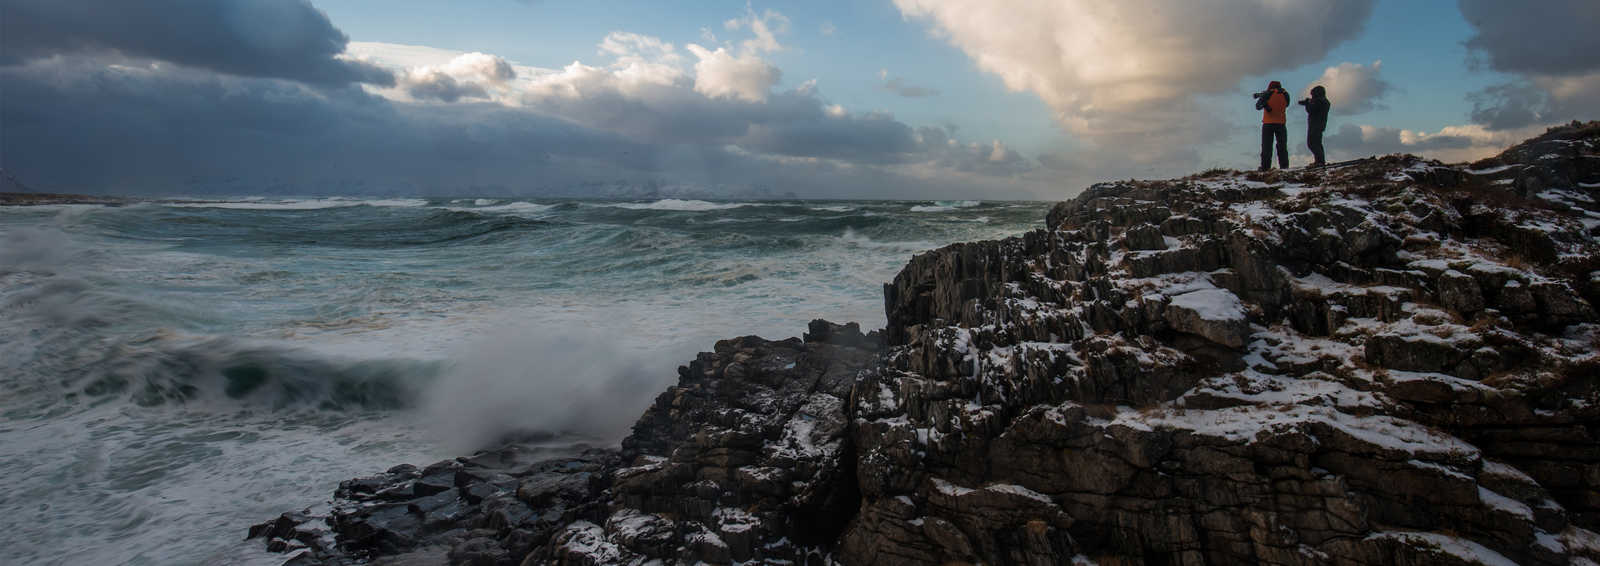 Photographing the wild seas from Andoya's wild coastline